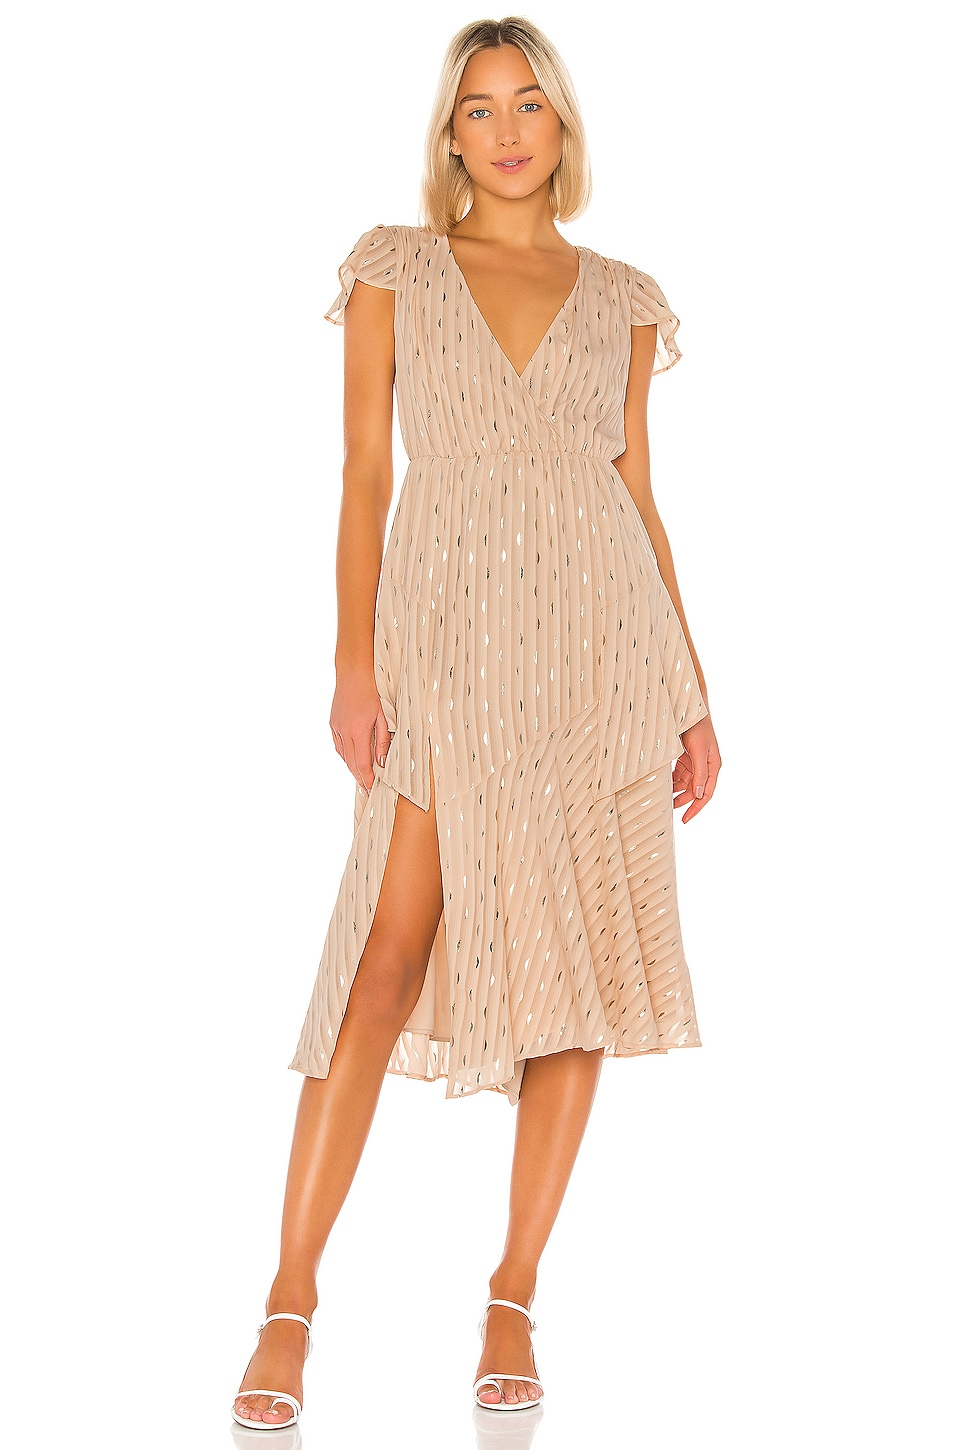 House of Harlow 1960 X REVOLVE Mota Dress in Nude